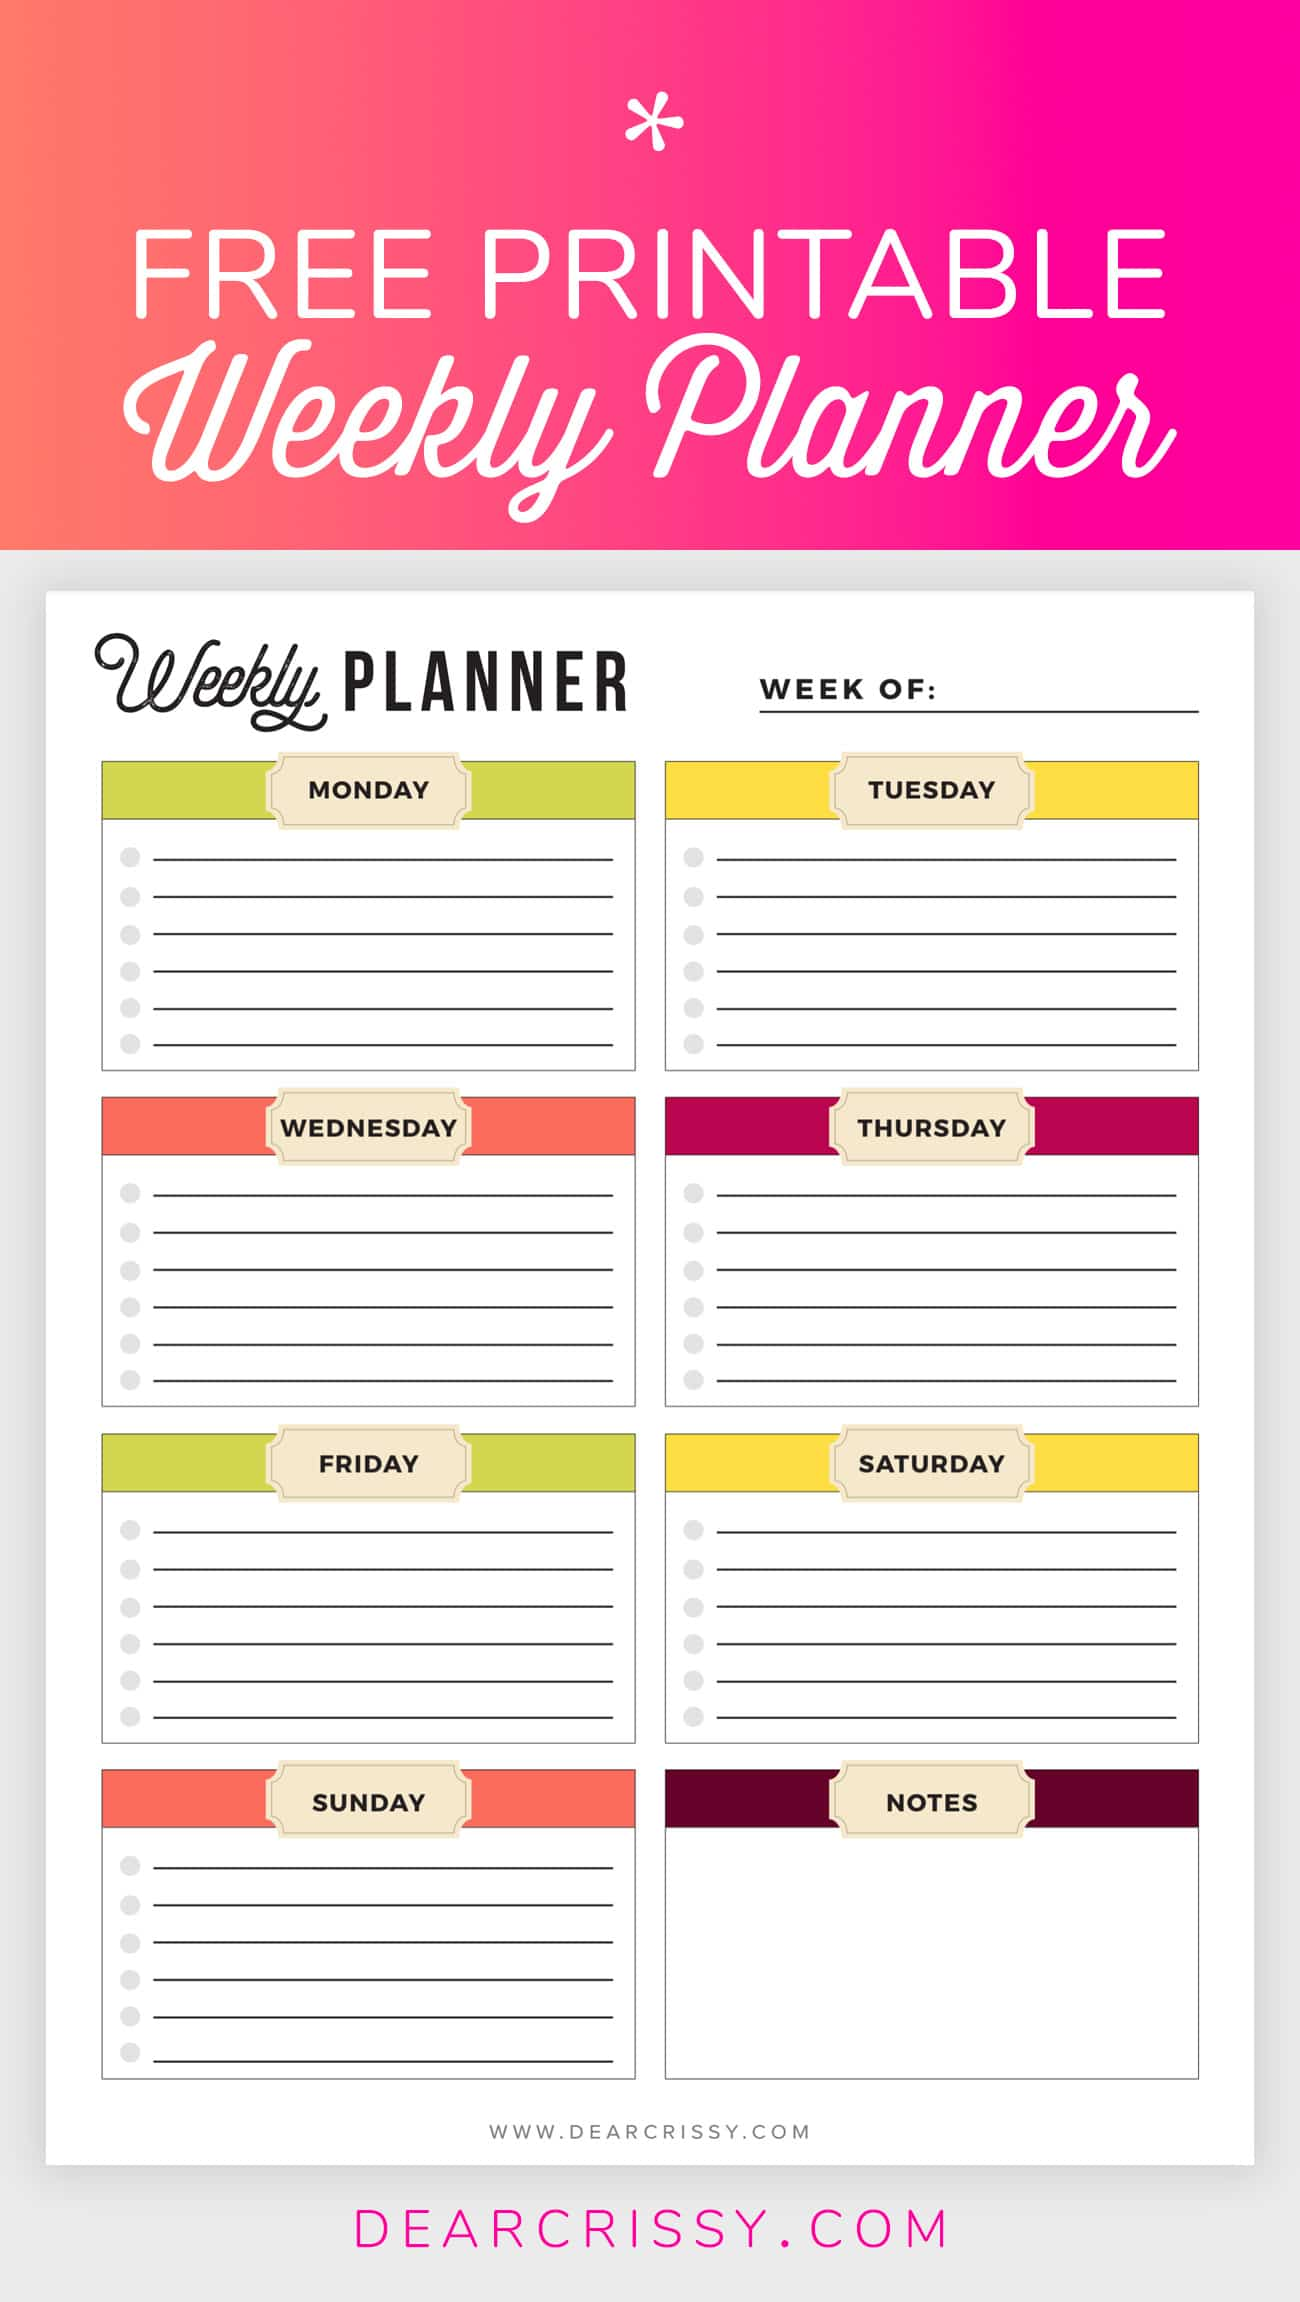 photograph about Free Printable Planners named No cost Printable Weekly Planner - Weekly Planner Printable!